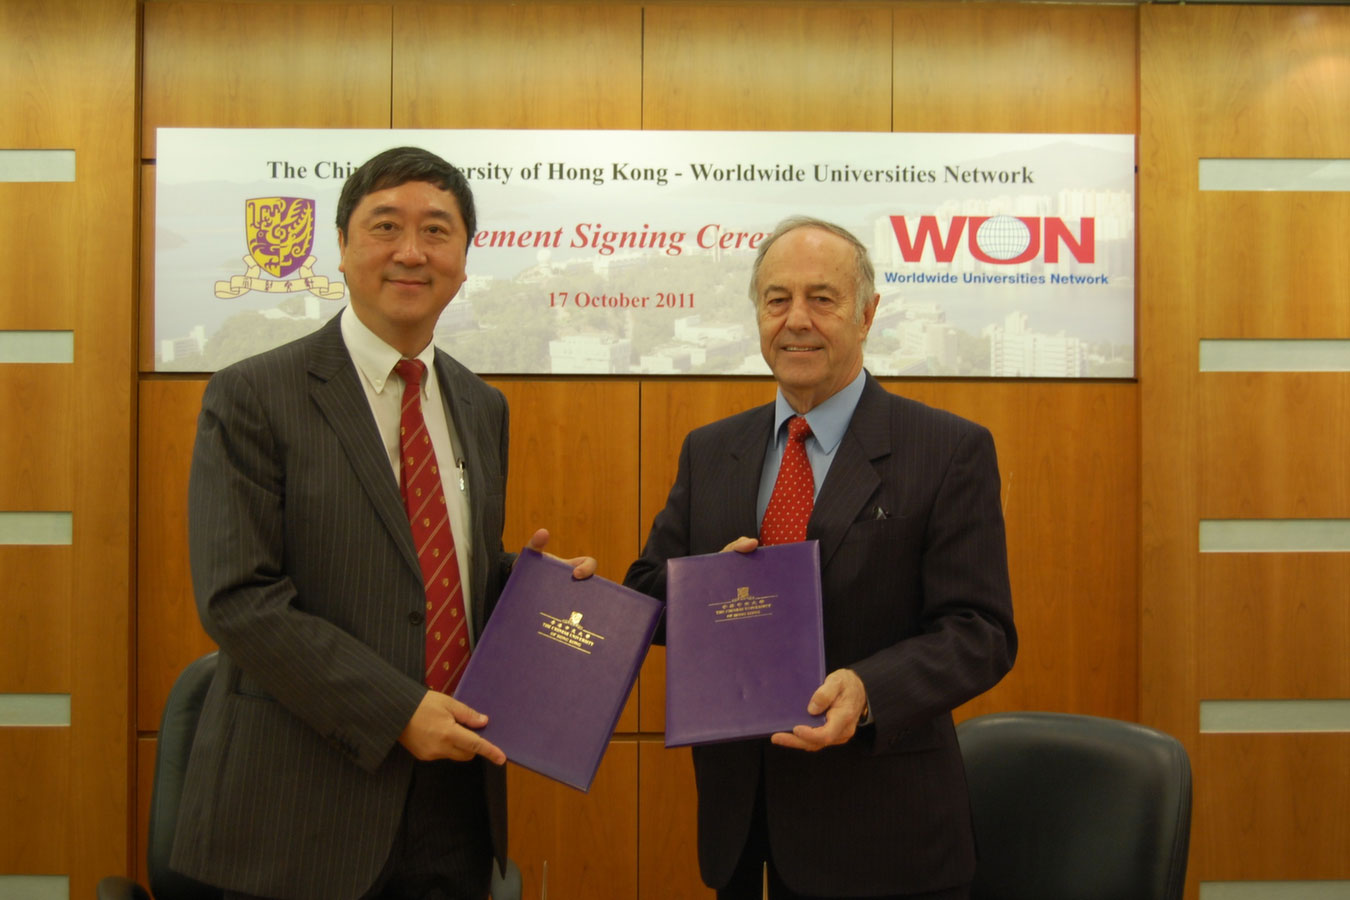 CUHK to join the Worldwide Universities Network (2011)